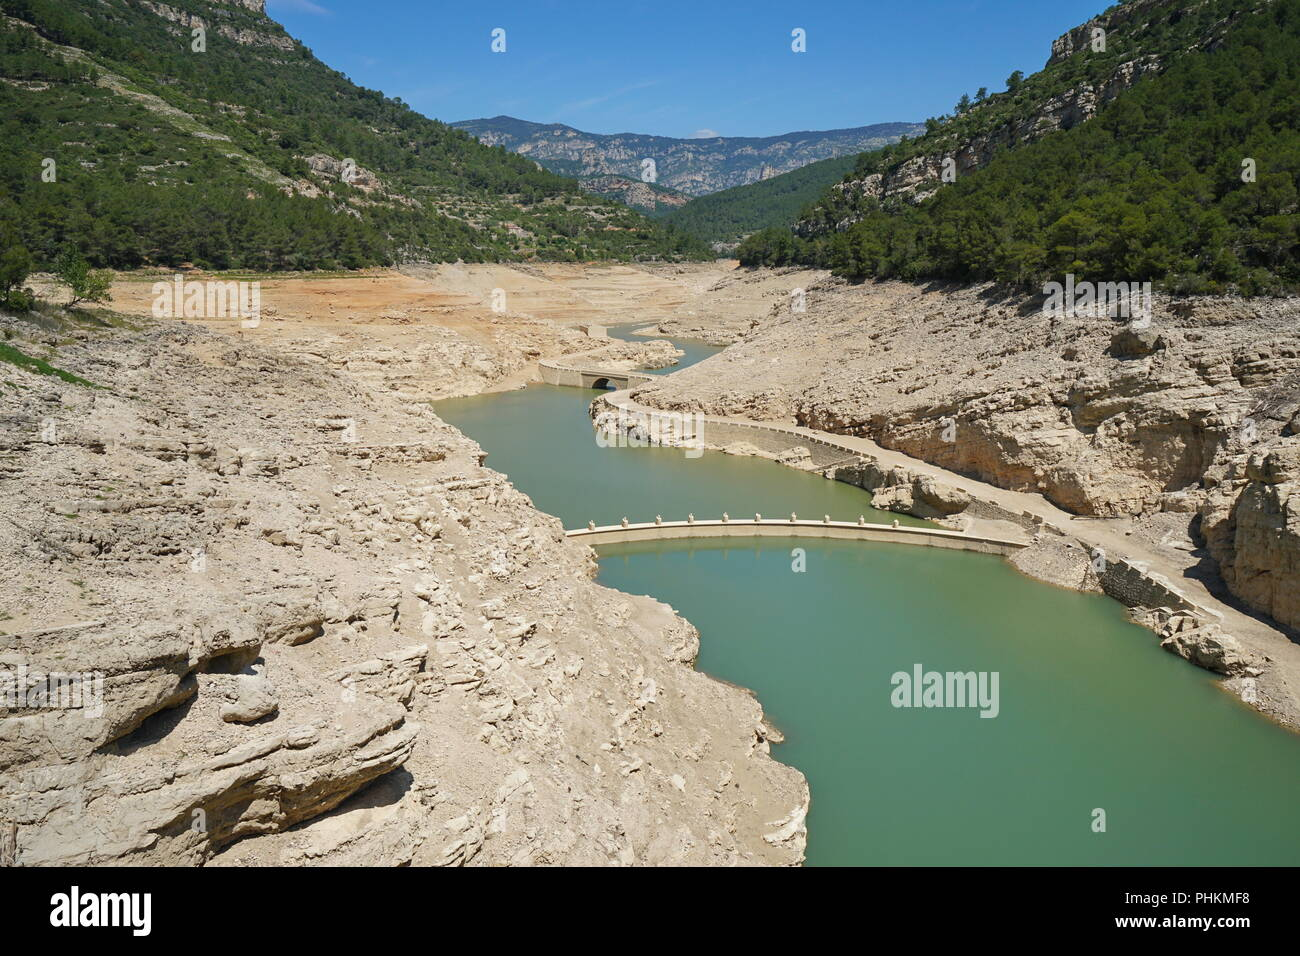 The reservoir of Ulldecona practically empty in june 2018 because of lack of rains, Province of Castellon, Valencian Community, Spain - Stock Image